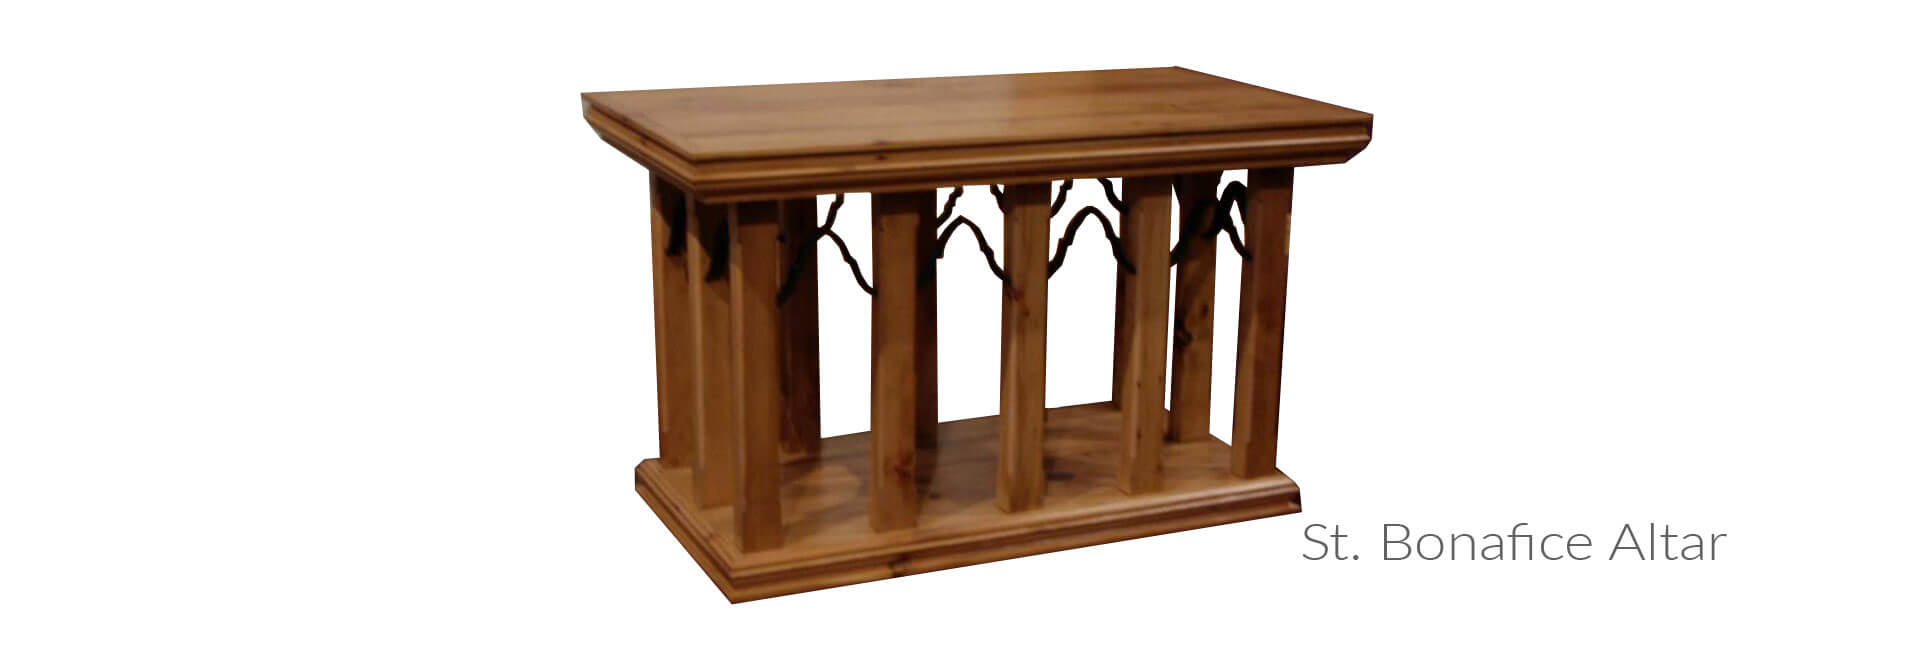 NCF-Featured-Liturgical-Bonafice-Altar